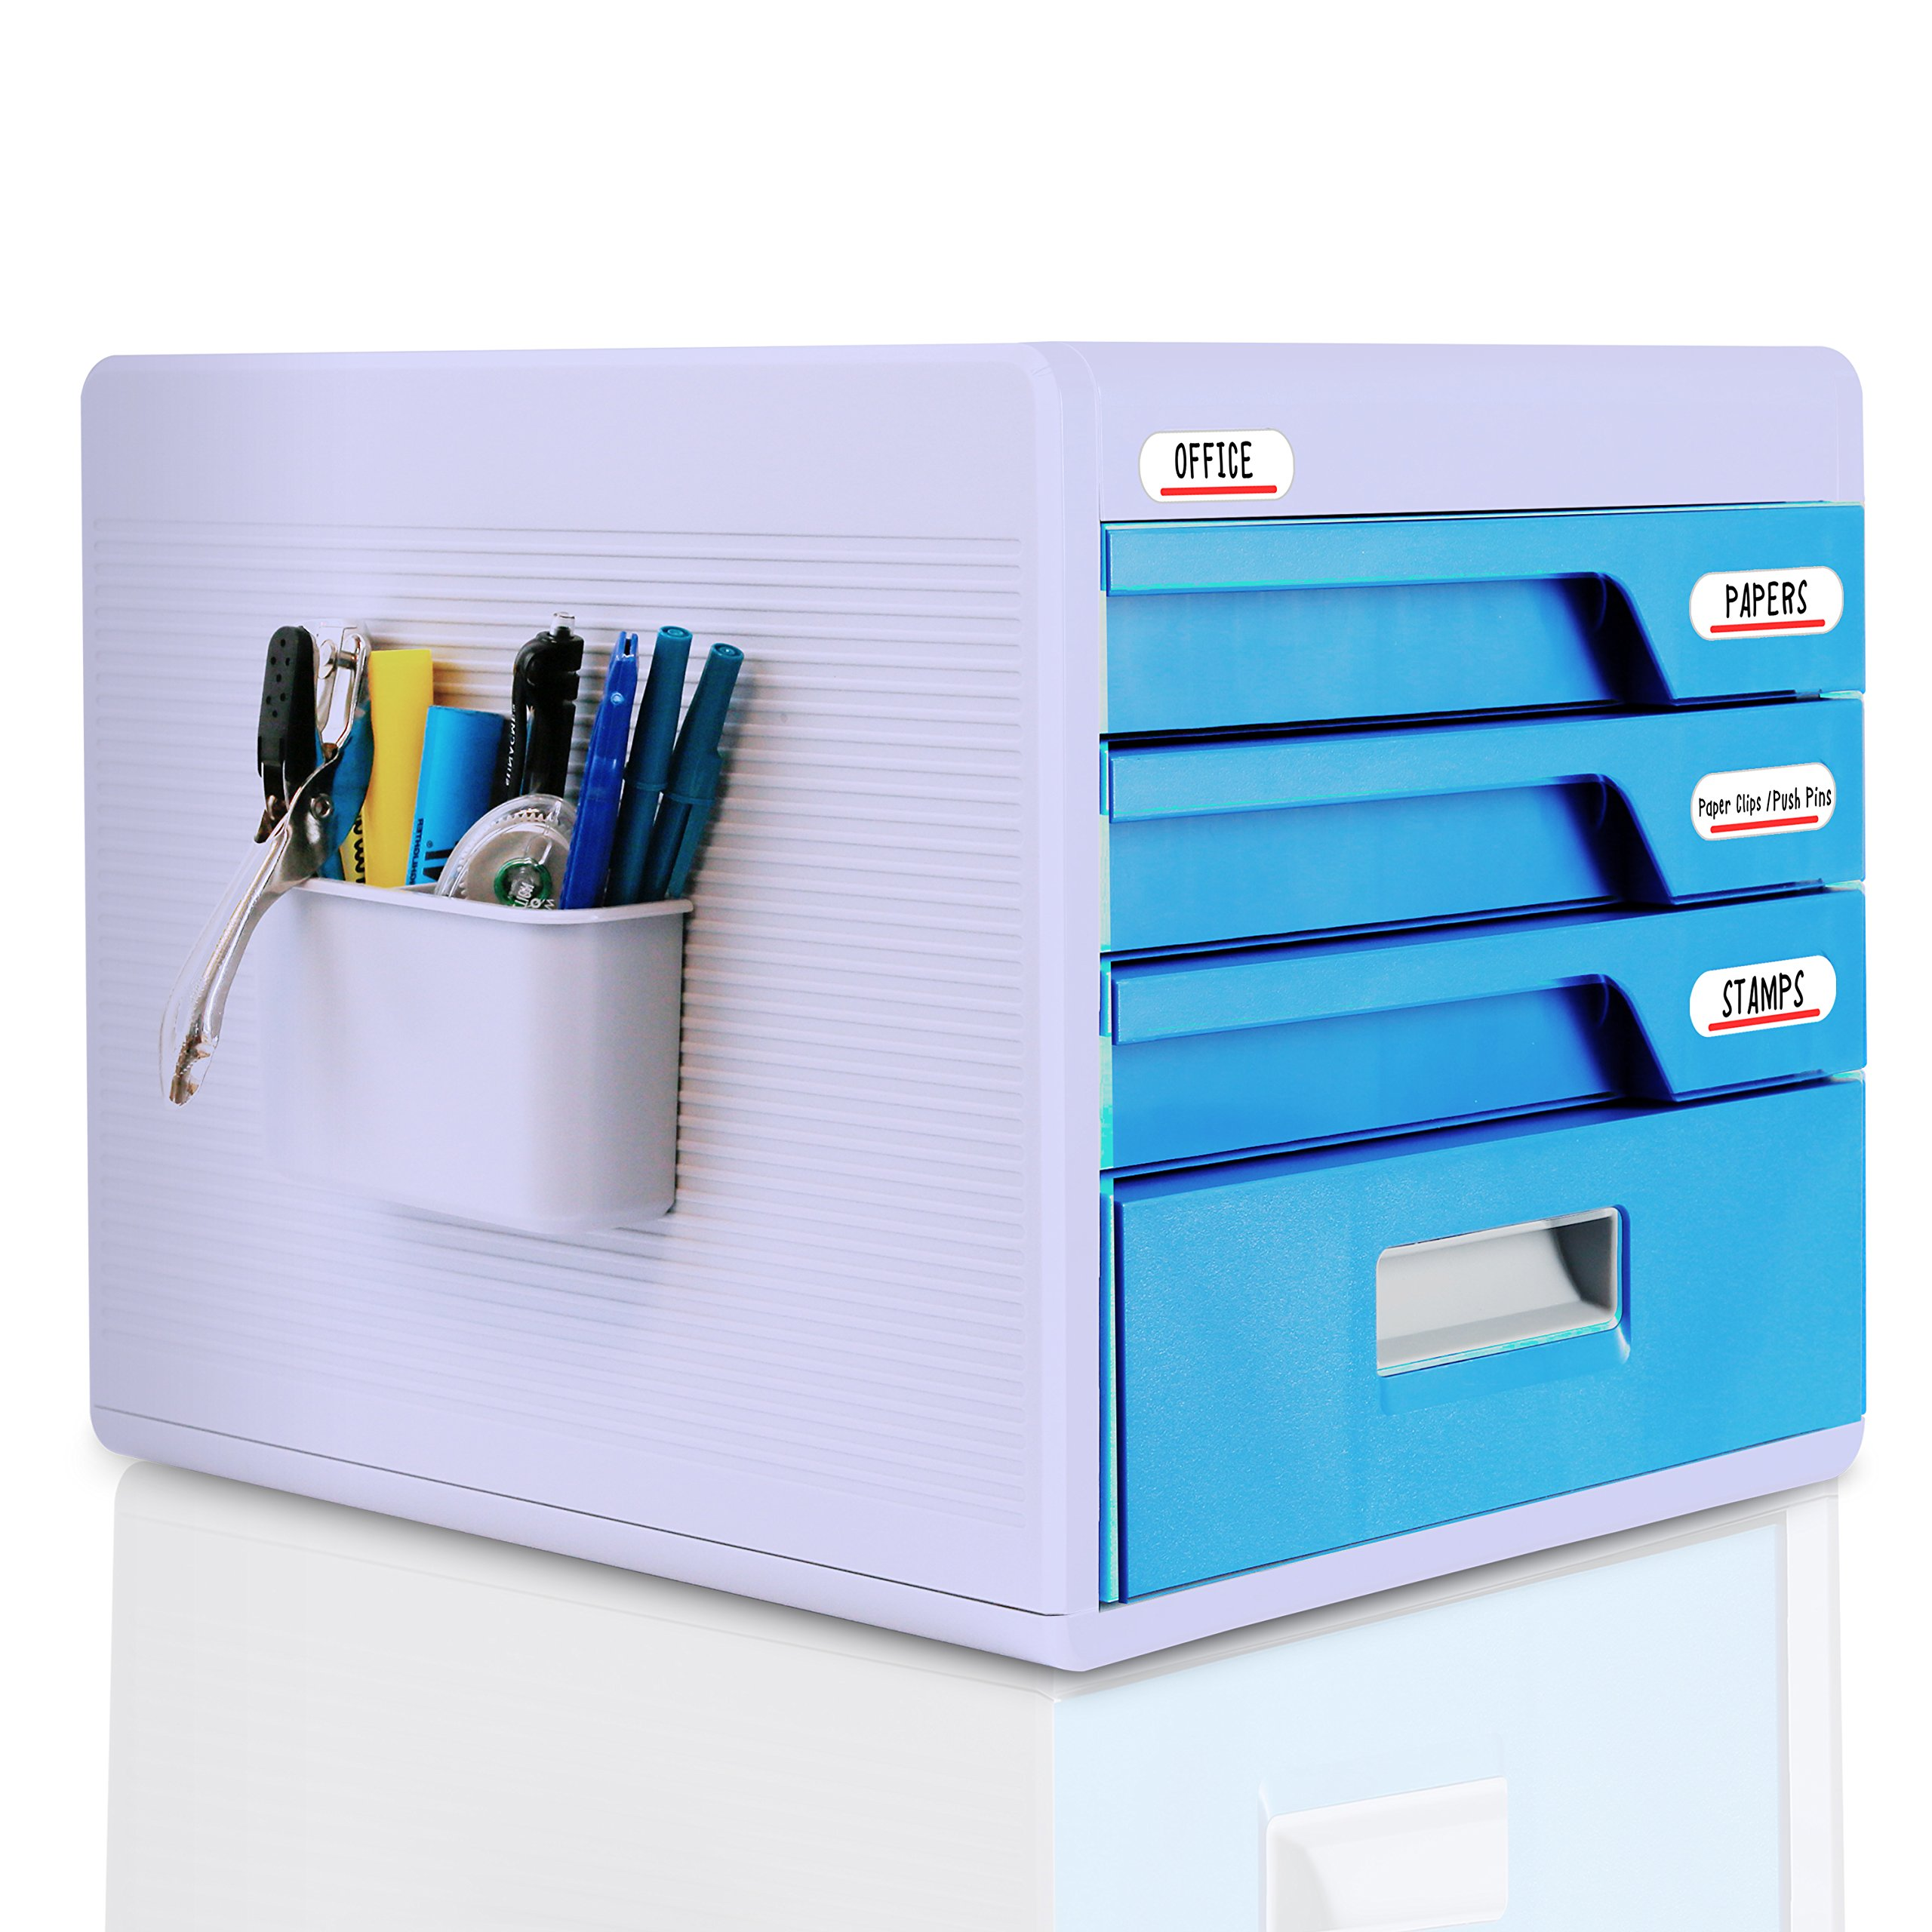 Locking Drawer Cabinet Desk Organizer - Home Office Desktop File Storage Box w/4 Lock Drawers, Great for Filing & Organizing Paper Documents, Tools, Kids Craft Supplies - SereneLife SLFCAB20